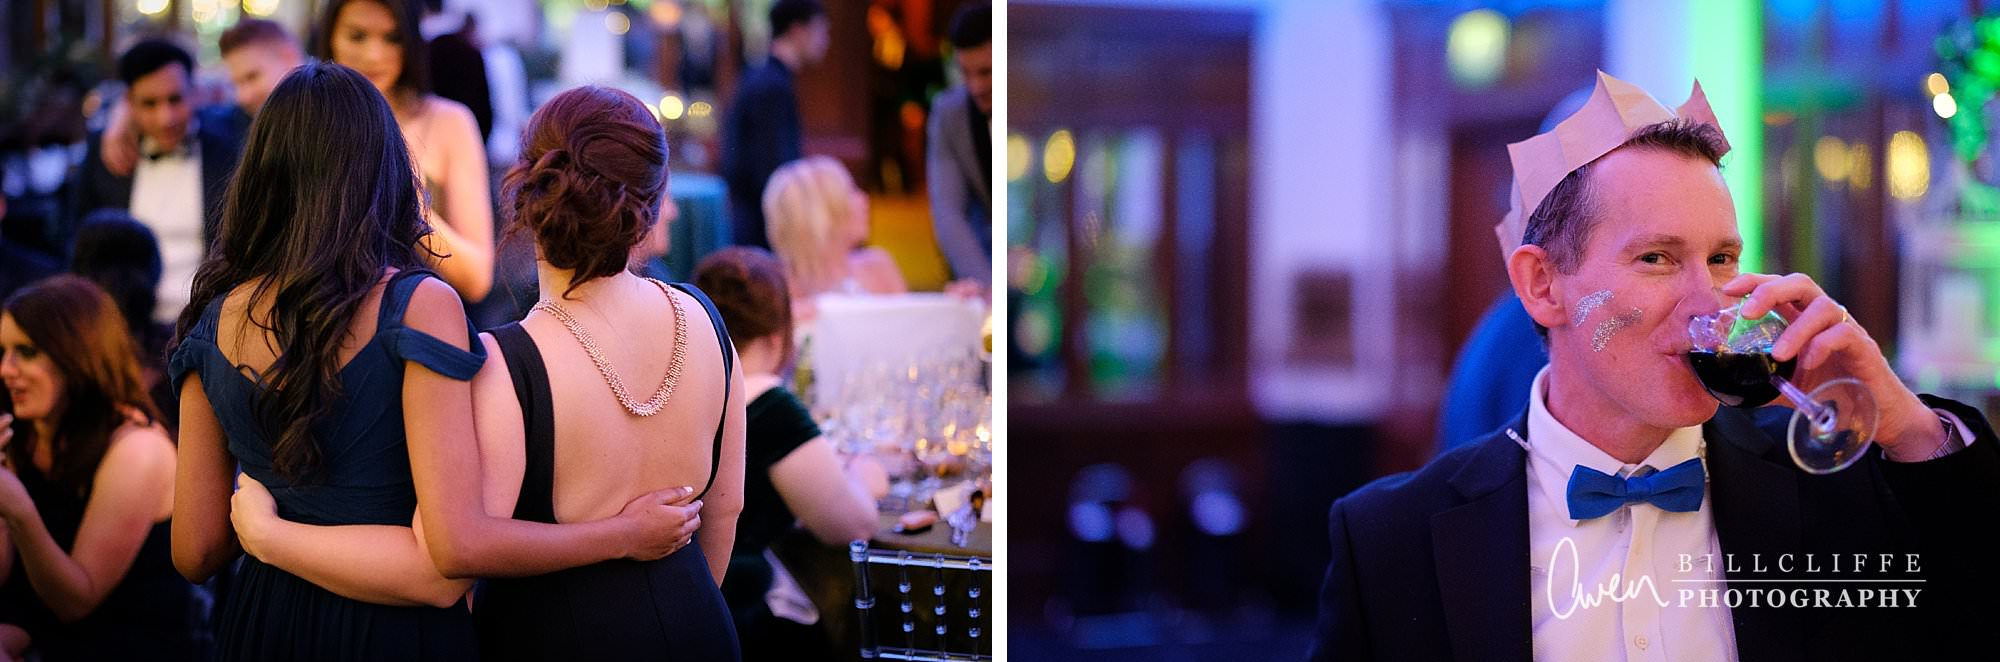 london event photographer 8 northumberland avenue mh 010 - A Christmas Party at 8 Northumberland